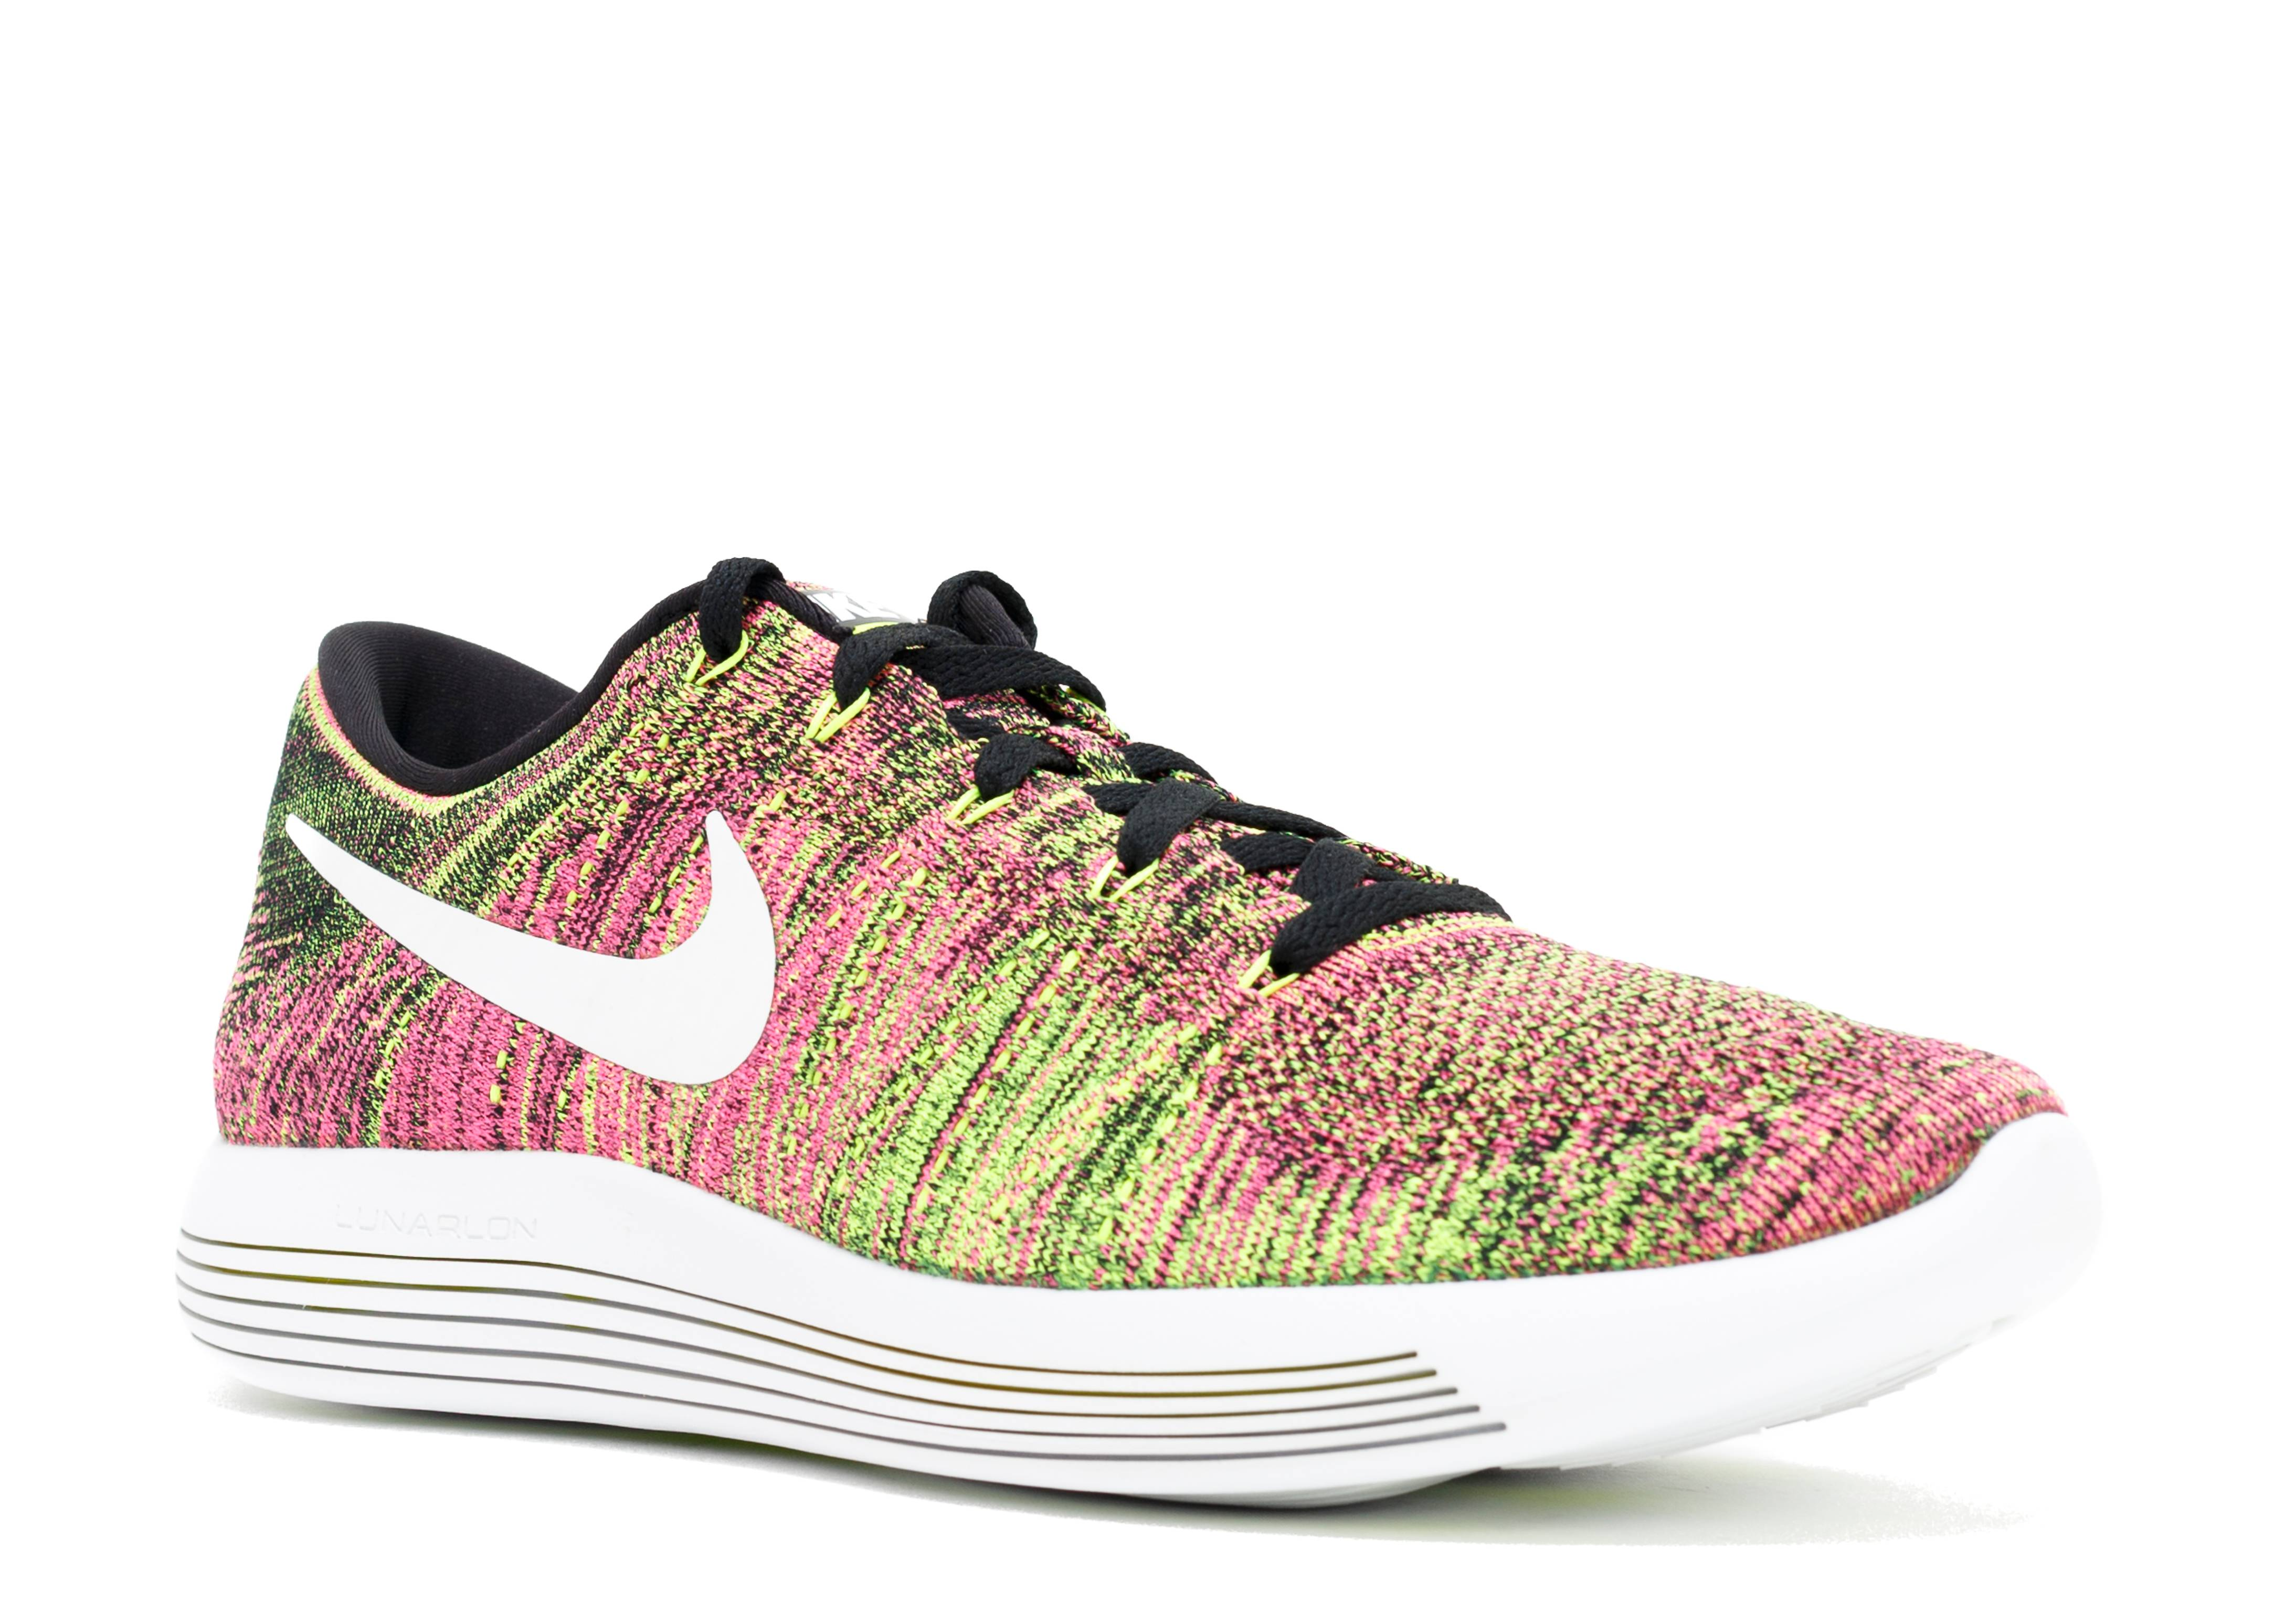 fc297b3f31b ... sale lunarepic low flyknit oc unlimited nike 844862 999 multi color  multi color flight club 28933